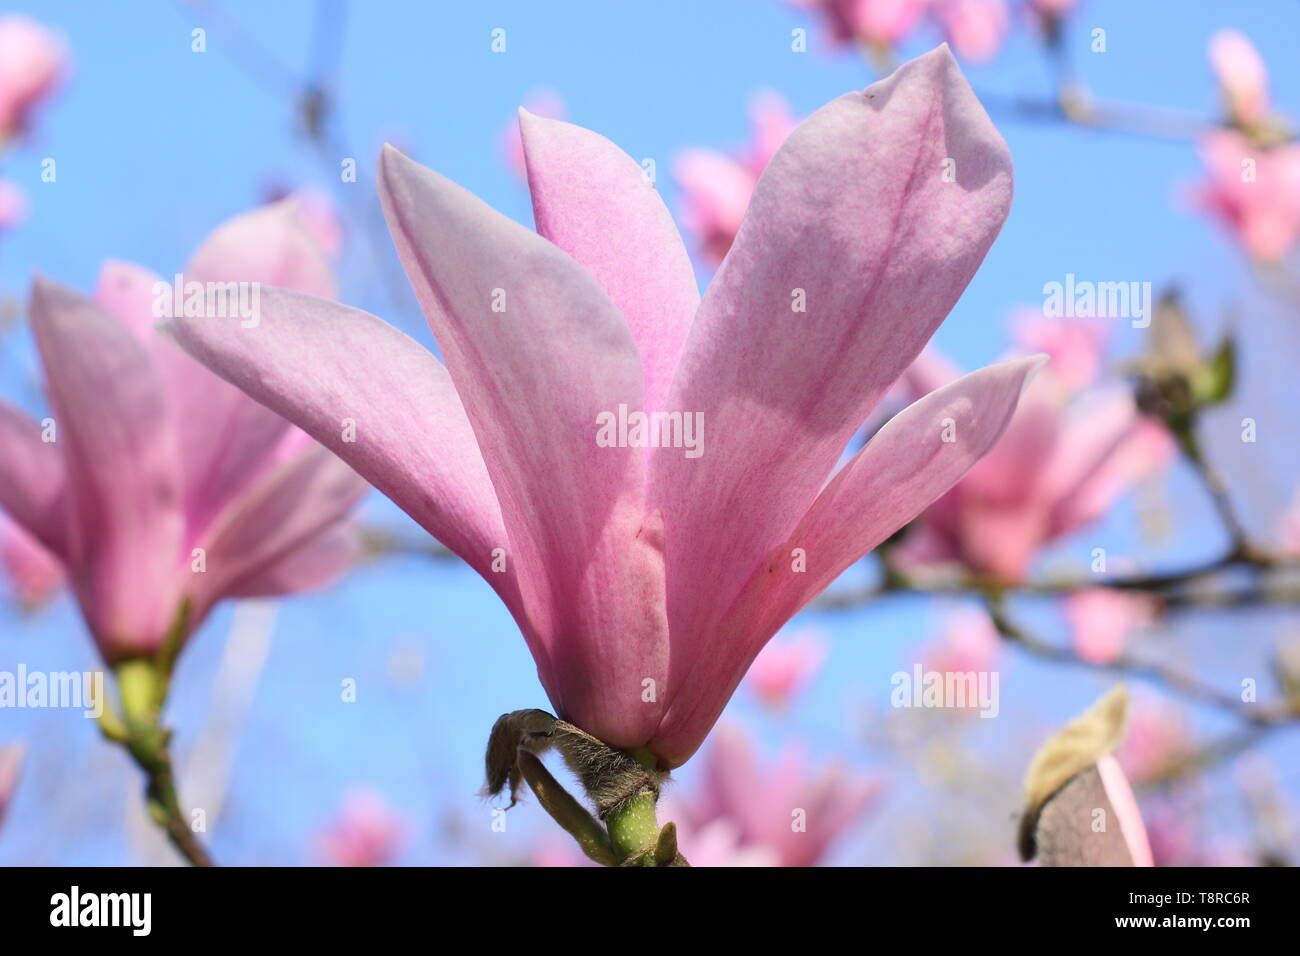 Magnolia 'Heaven Scent'. Rosy pink blossoms of Magnolia 'Heaven Sent' in April - UK. AGM Stock Photo